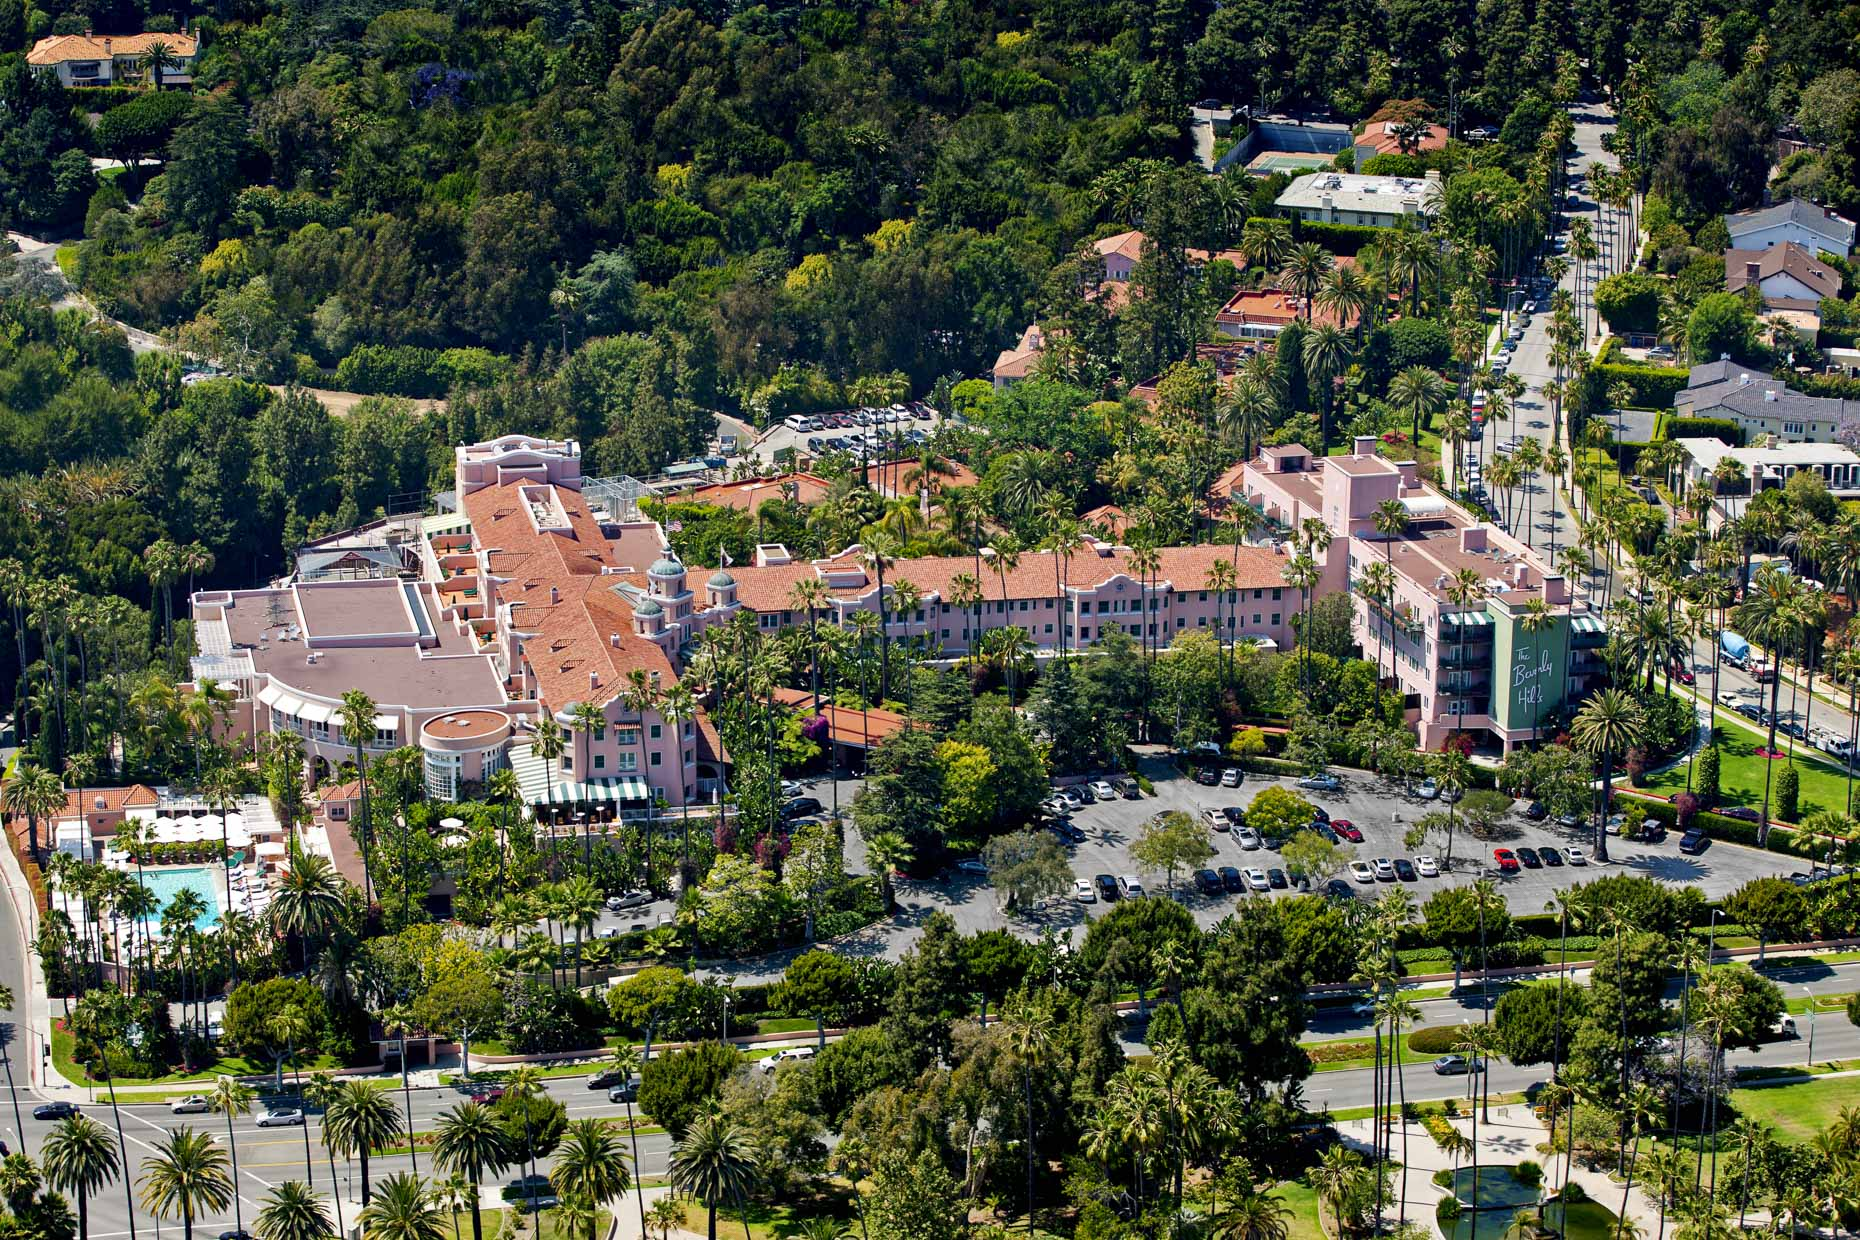 Bevery Hills Hotel Los Angeles aerial photography